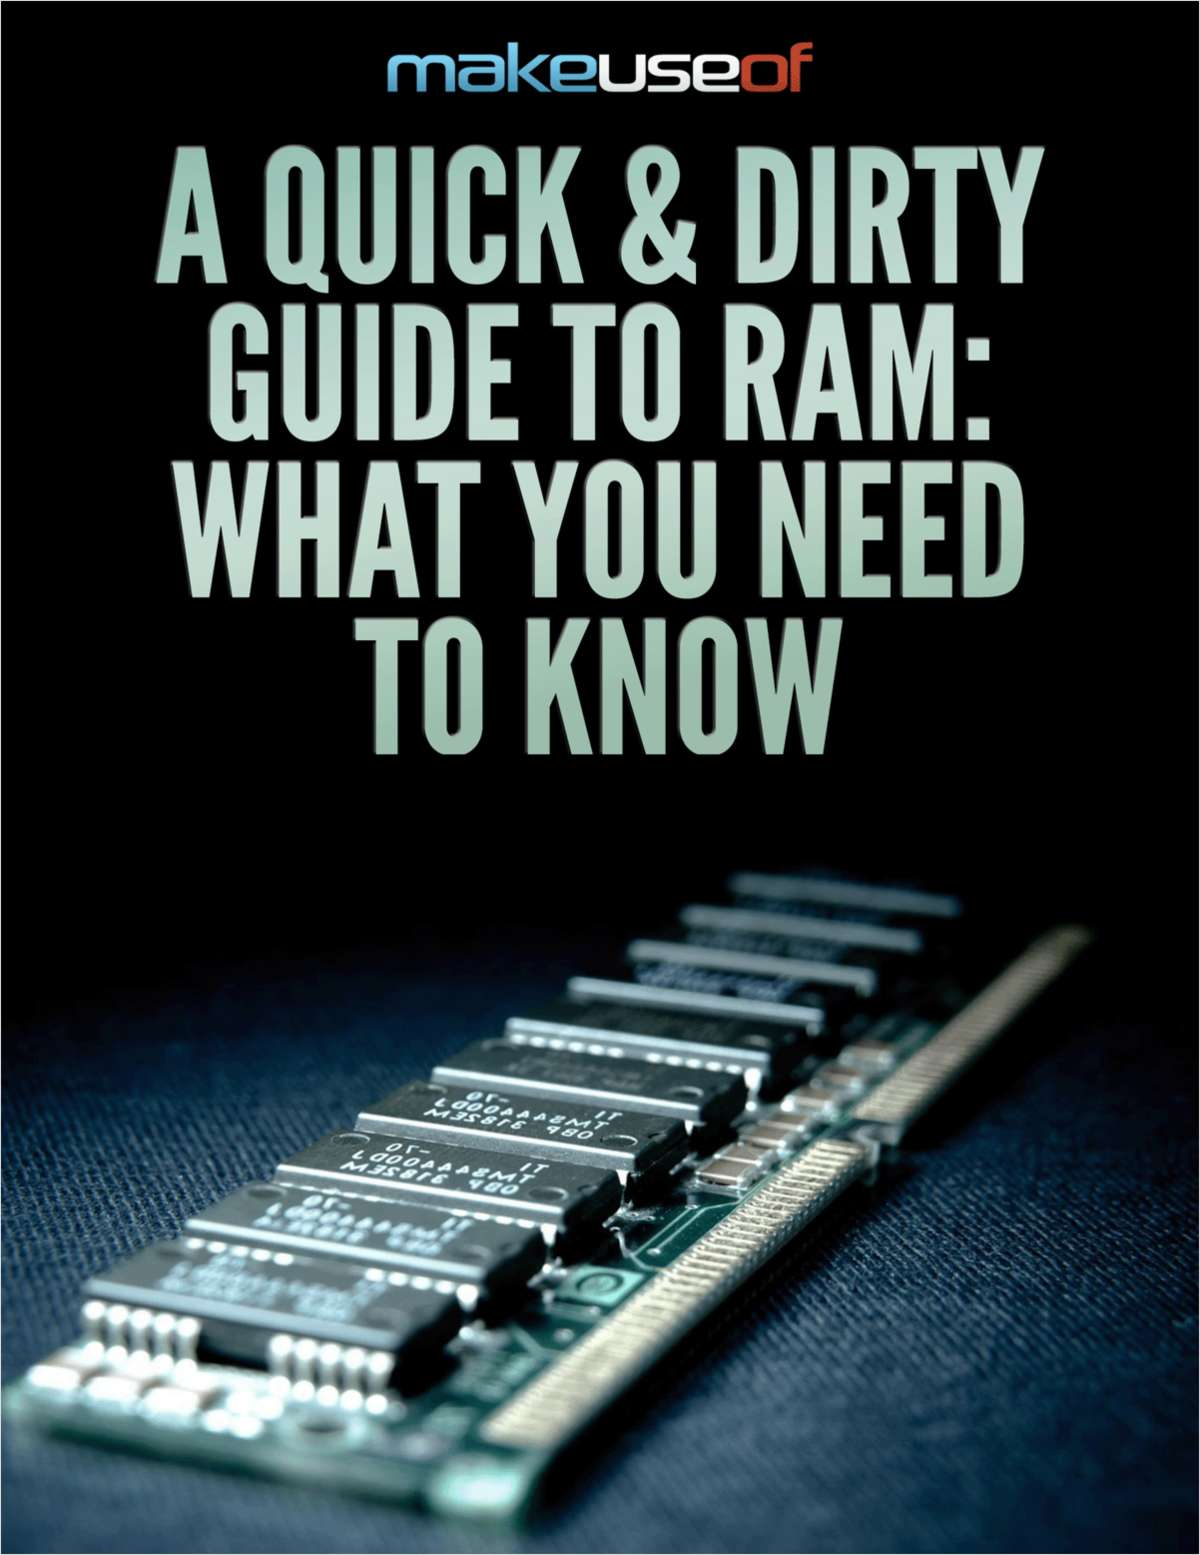 A Quick & Dirty Guide to RAM: What You Need to Know